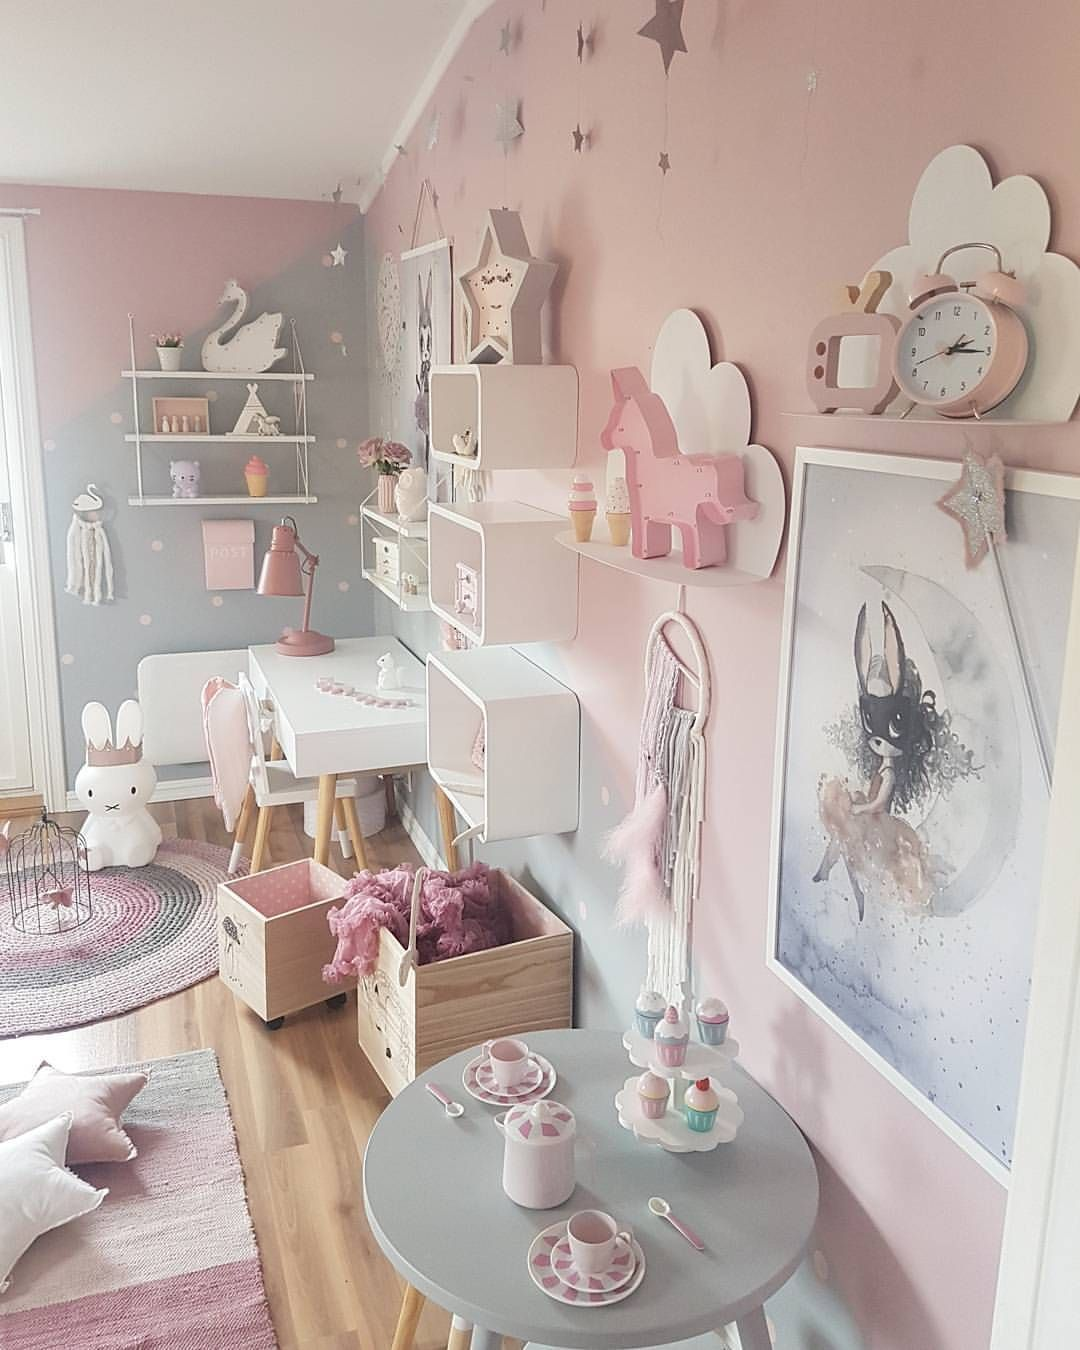 Small Bedroom Carpet Bedroom Furniture Brown Interior Design Styles Bedroom For Girls Newborn Boy Bedroom Ideas: 18 Luxurious Pink Gray Nursery Room